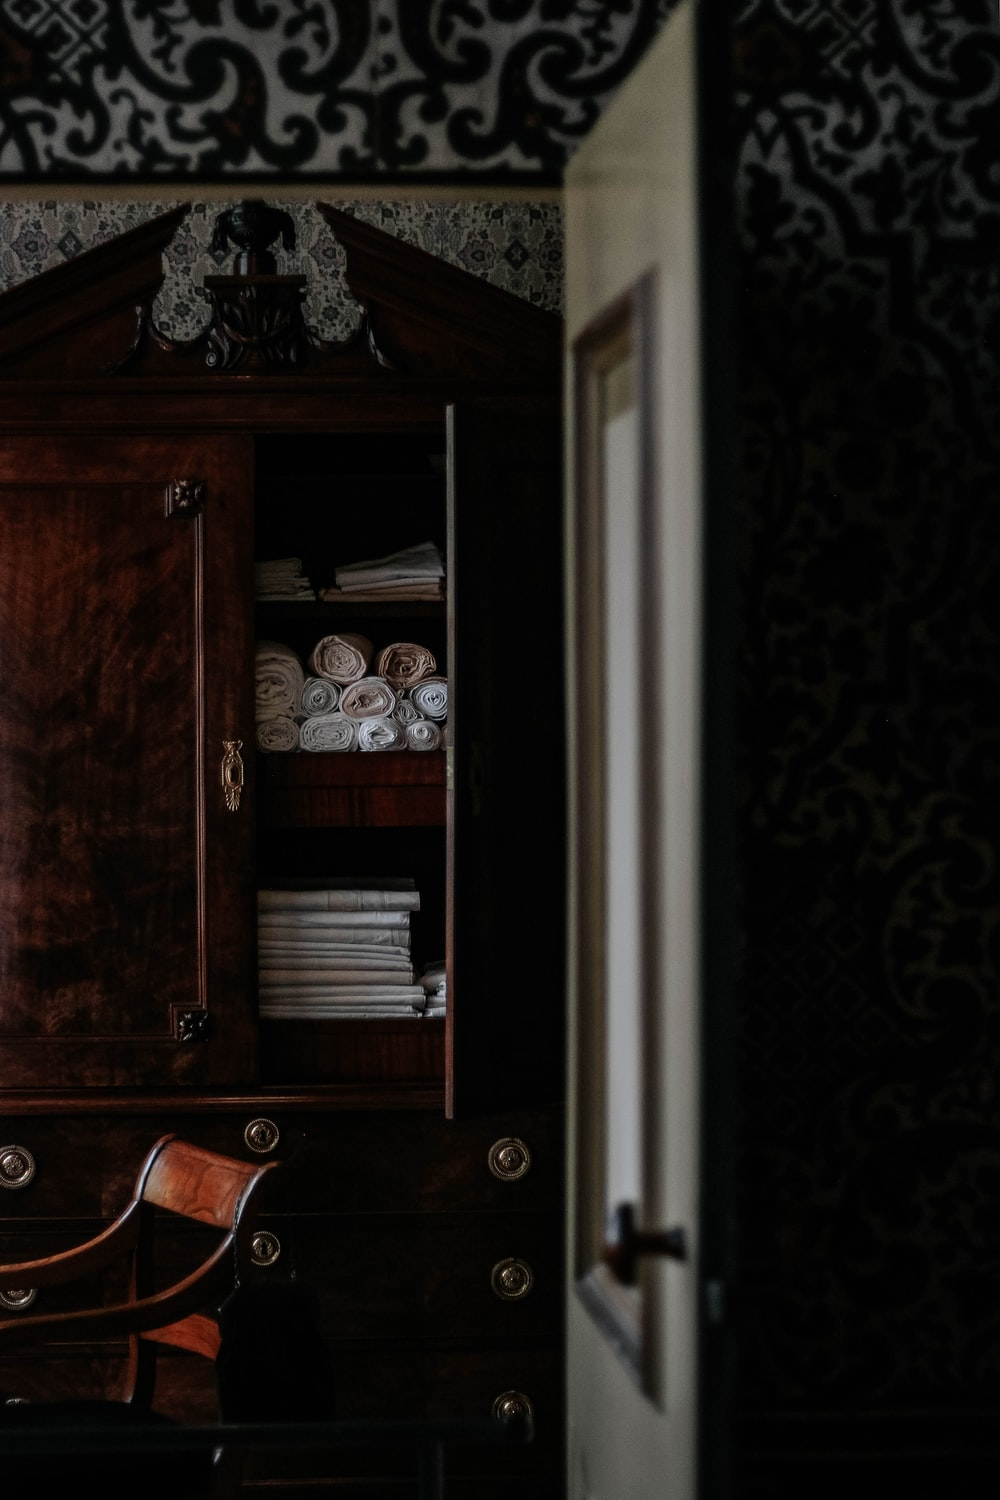 brown wooden cabinet close-up photography